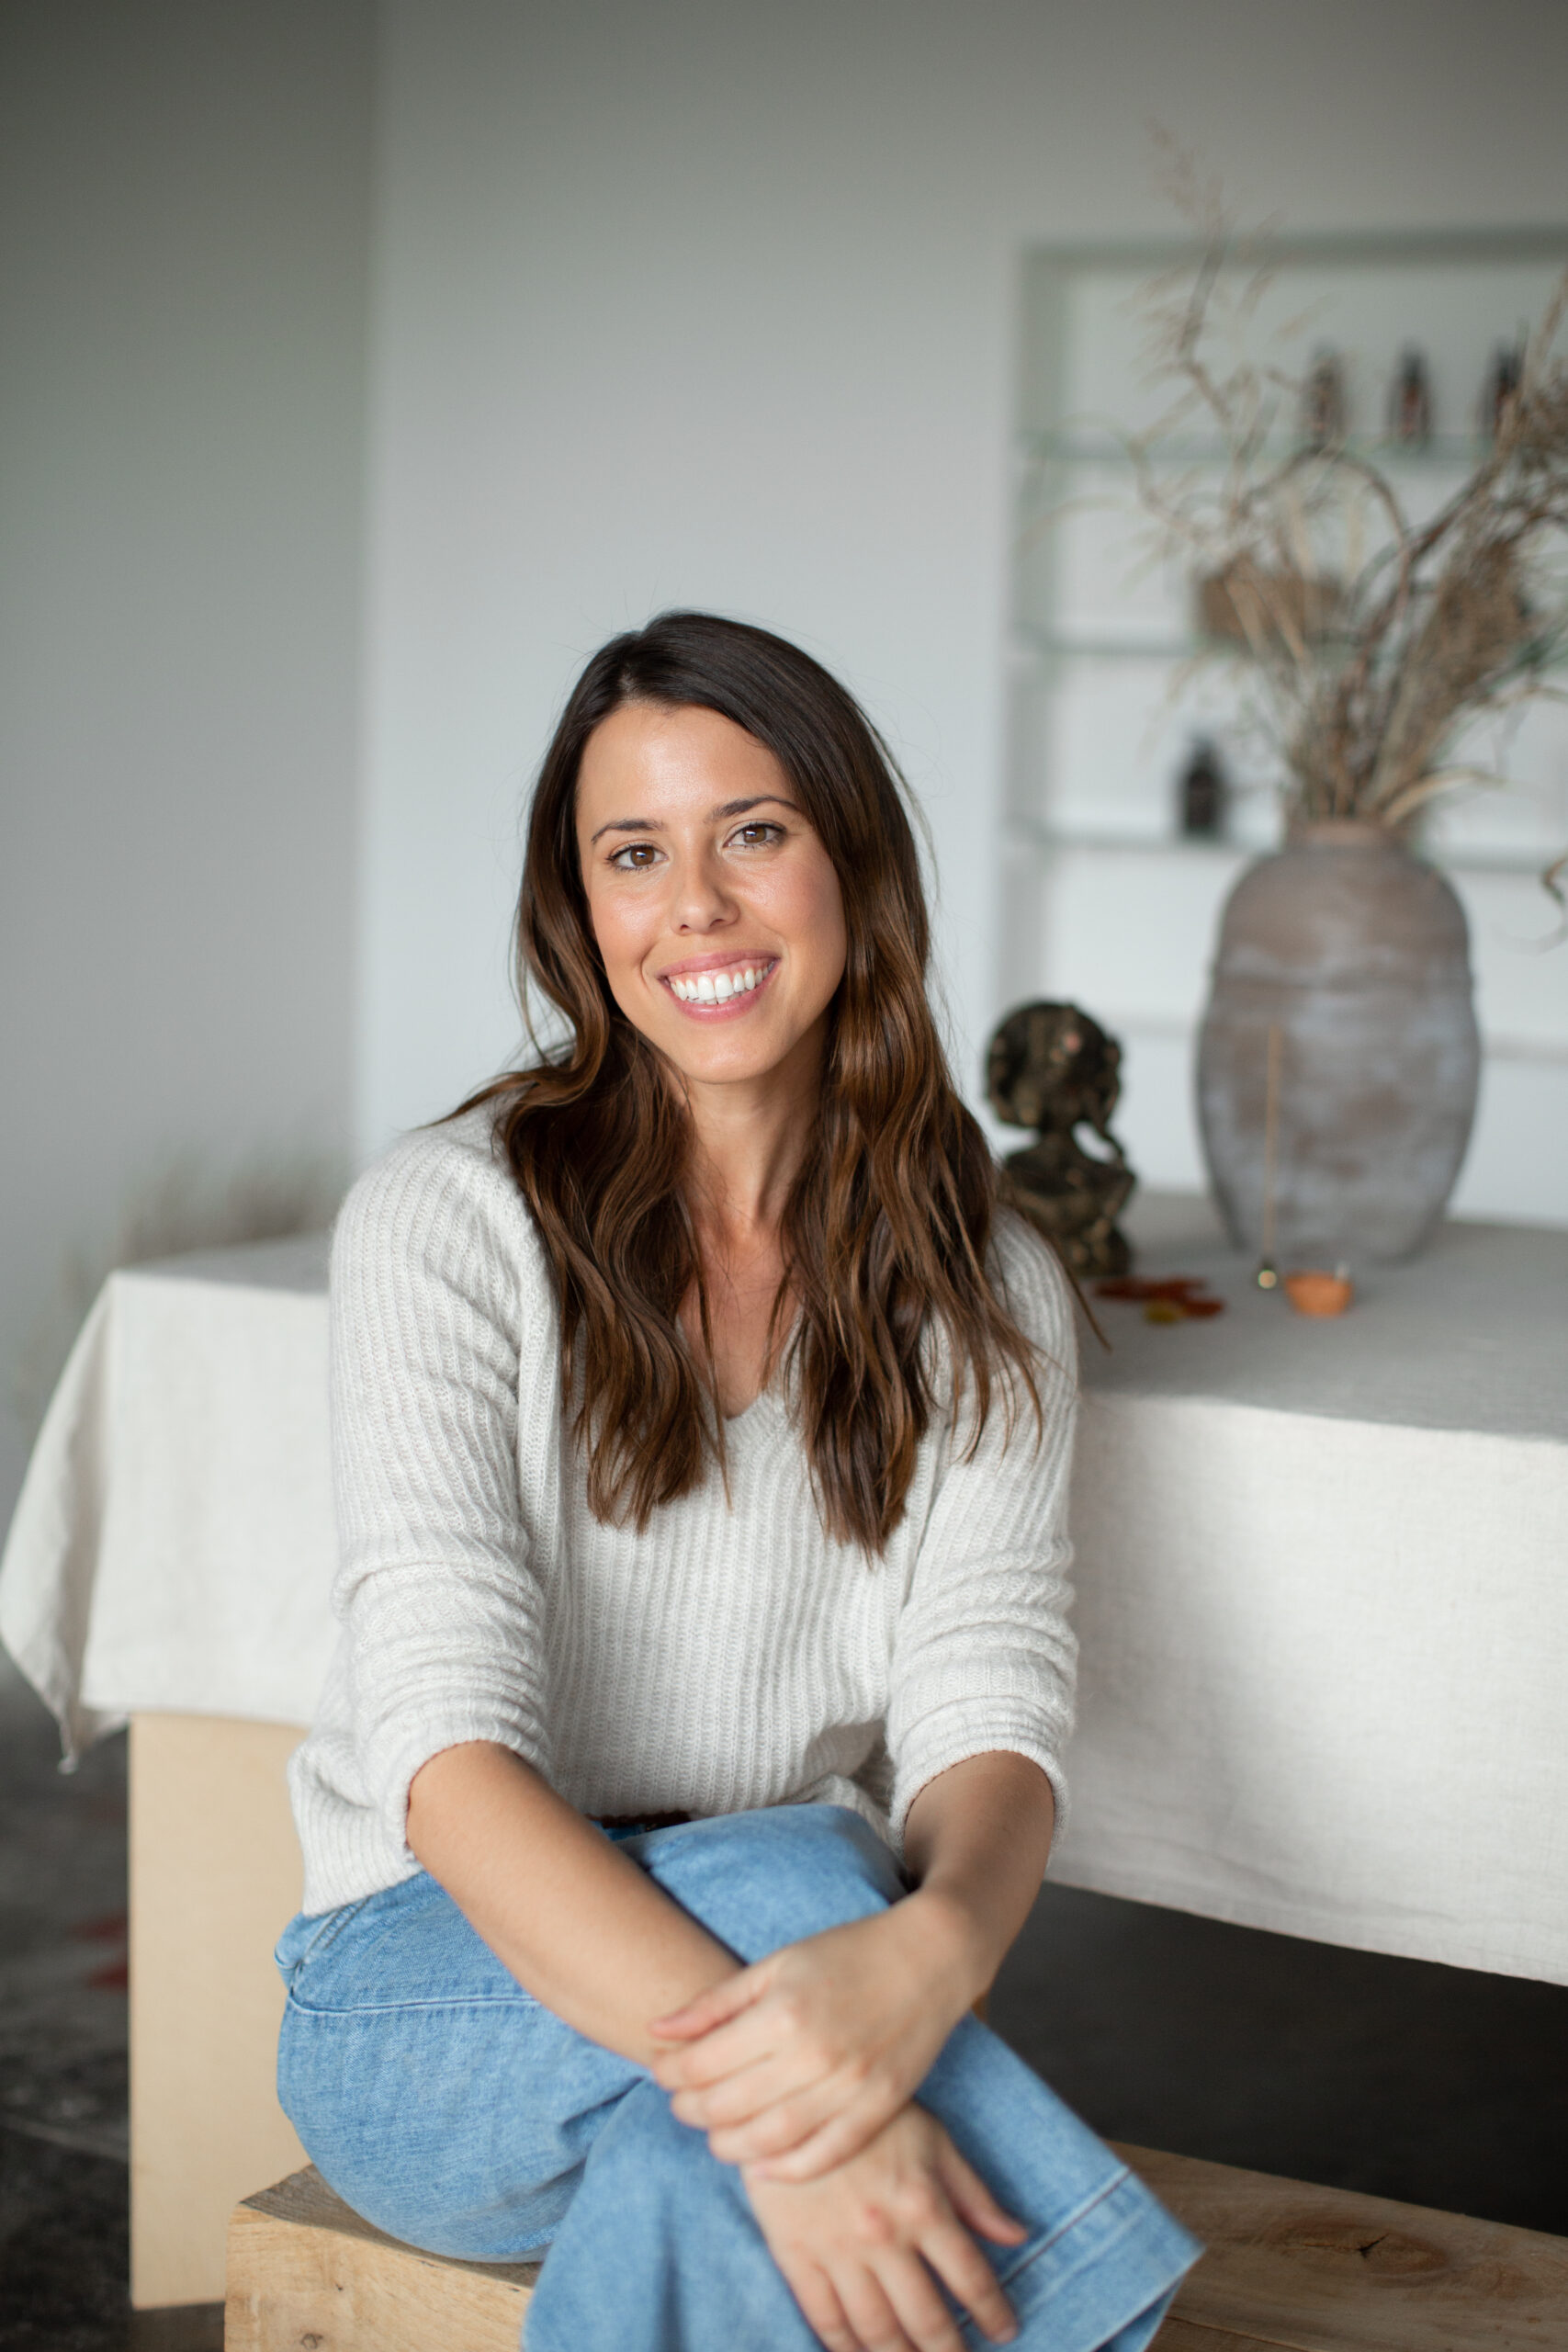 Ayurveda is Not a Trend or Fad Diet Exclusive to Food Deemed Healthy at the Moment: Claire Ragozzino